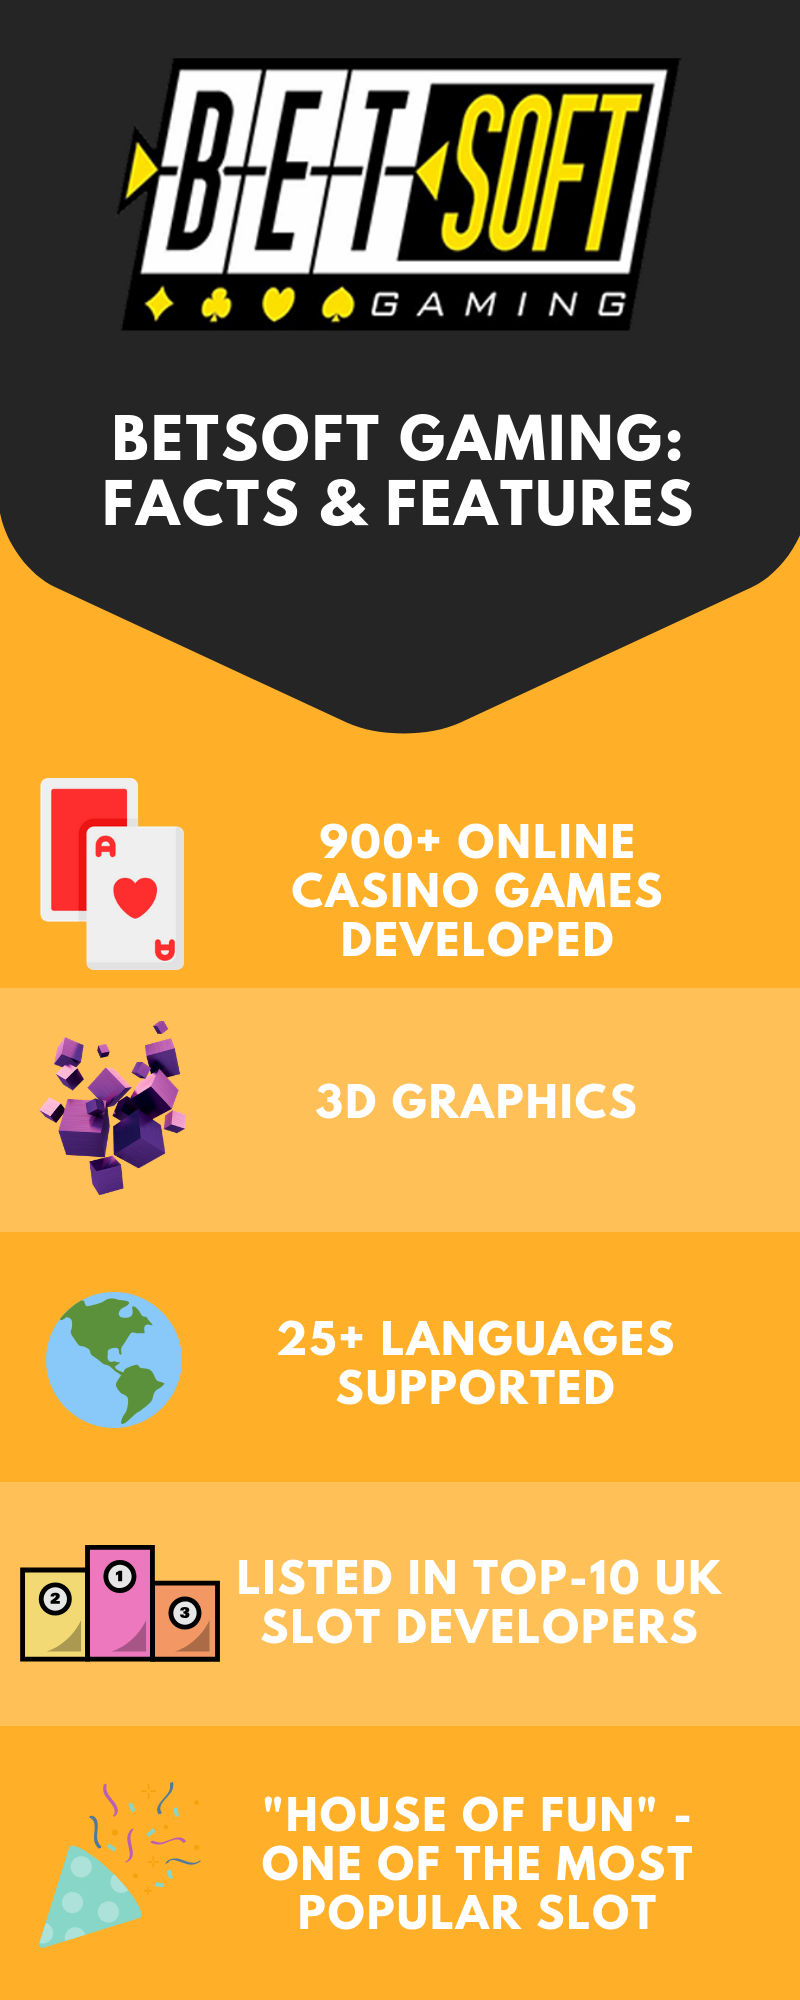 Betsoft Gaming Software Provider [Infographic]